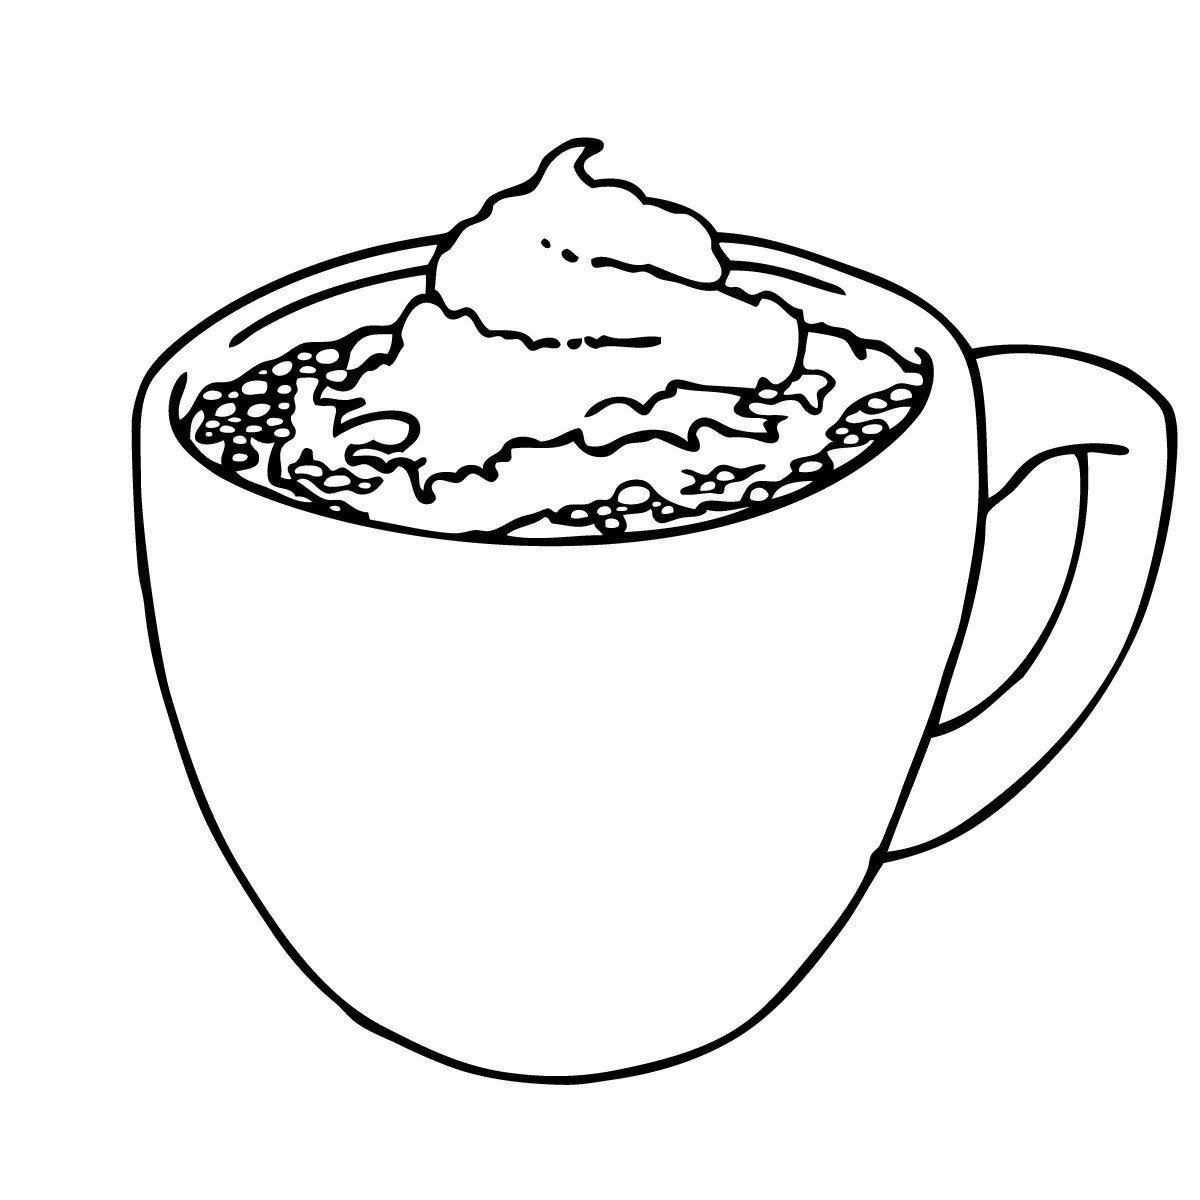 Mug of cocoa with whipped cream clipart black and white png black and white download Cocoa Drawing at PaintingValley.com | Explore collection of Cocoa ... png black and white download